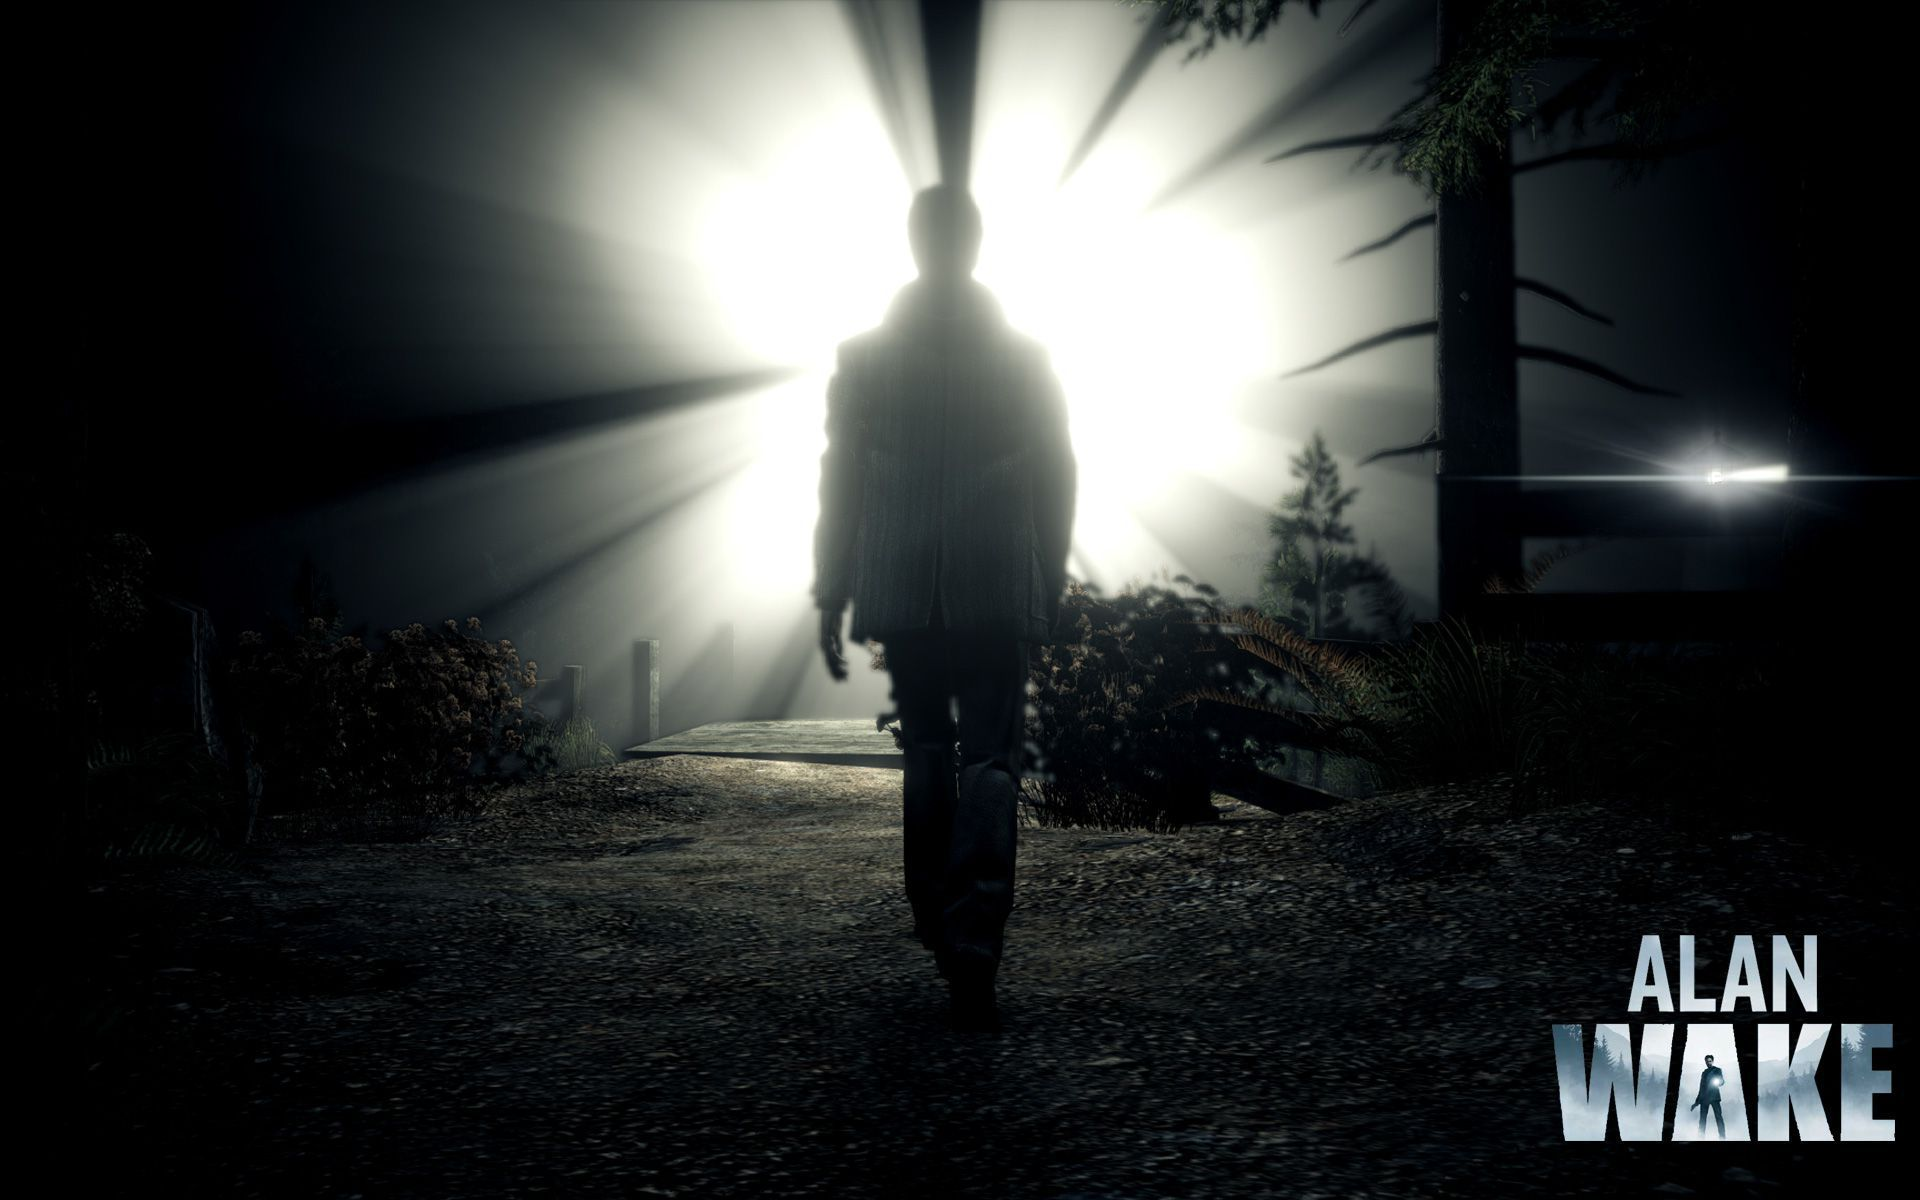 Alan Wake Tumblr